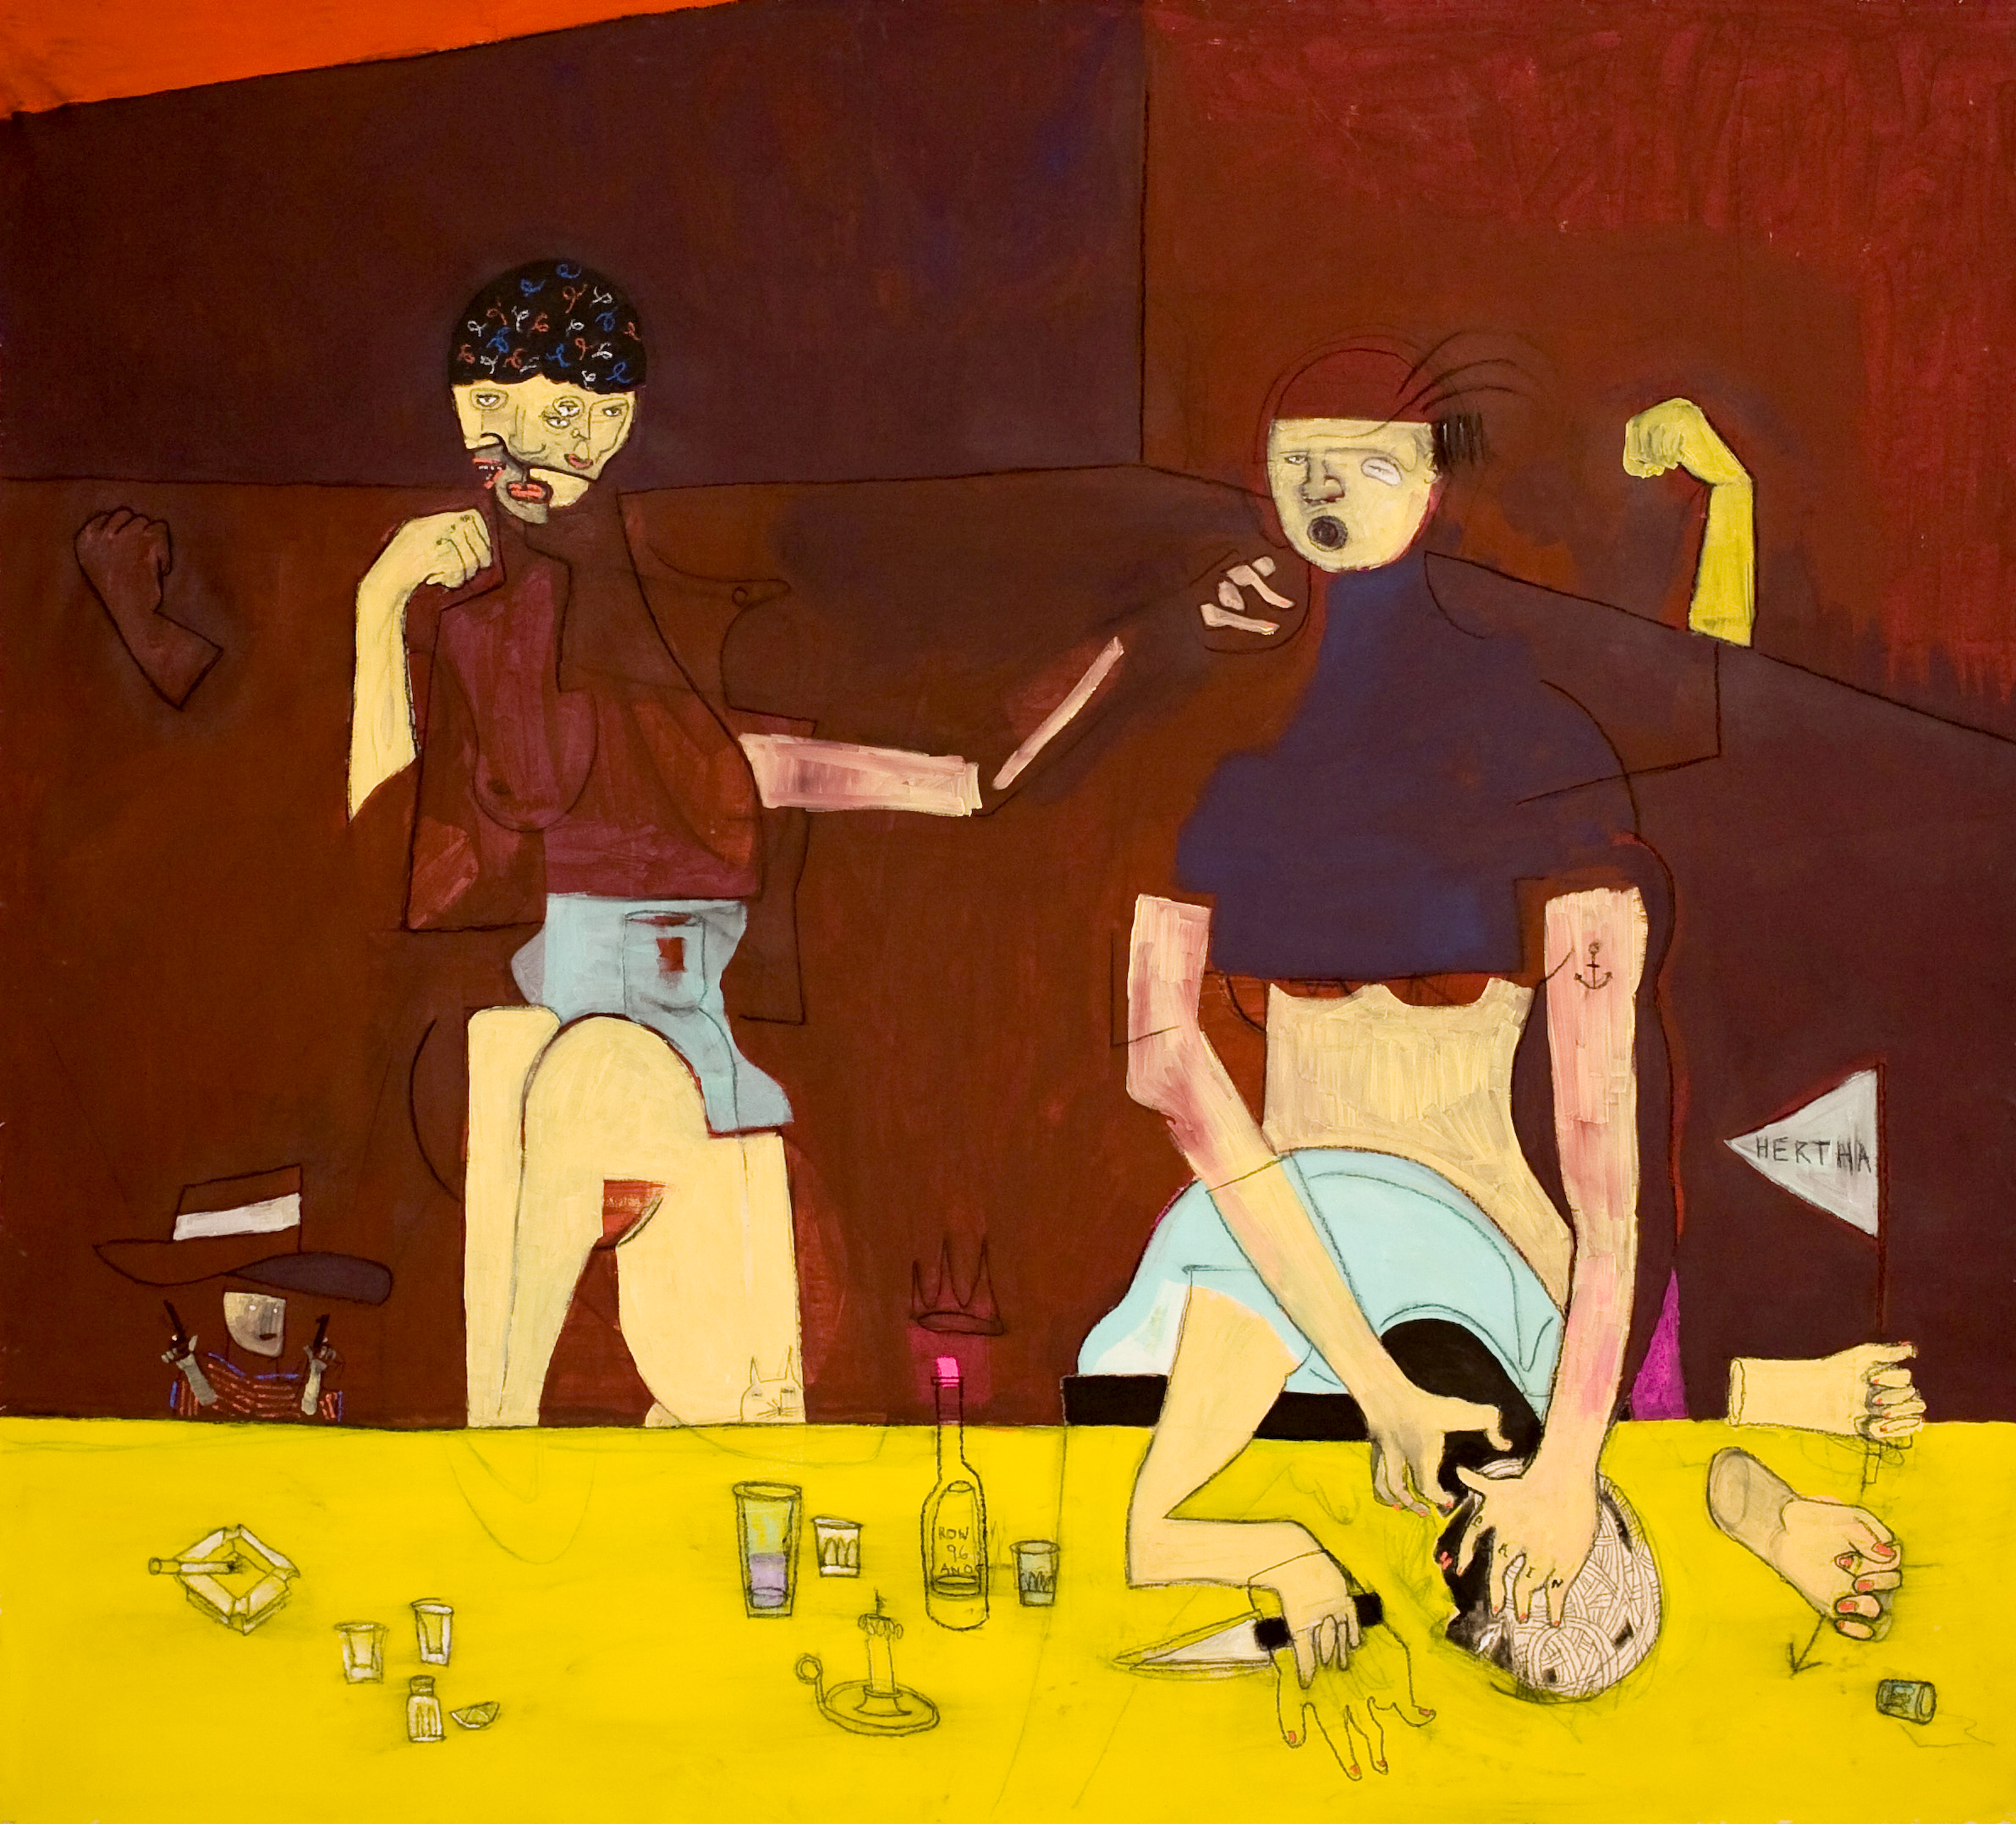 NOW WE ARE TALKING-170x160Cm-67x63In-AC-BERLIN-2013